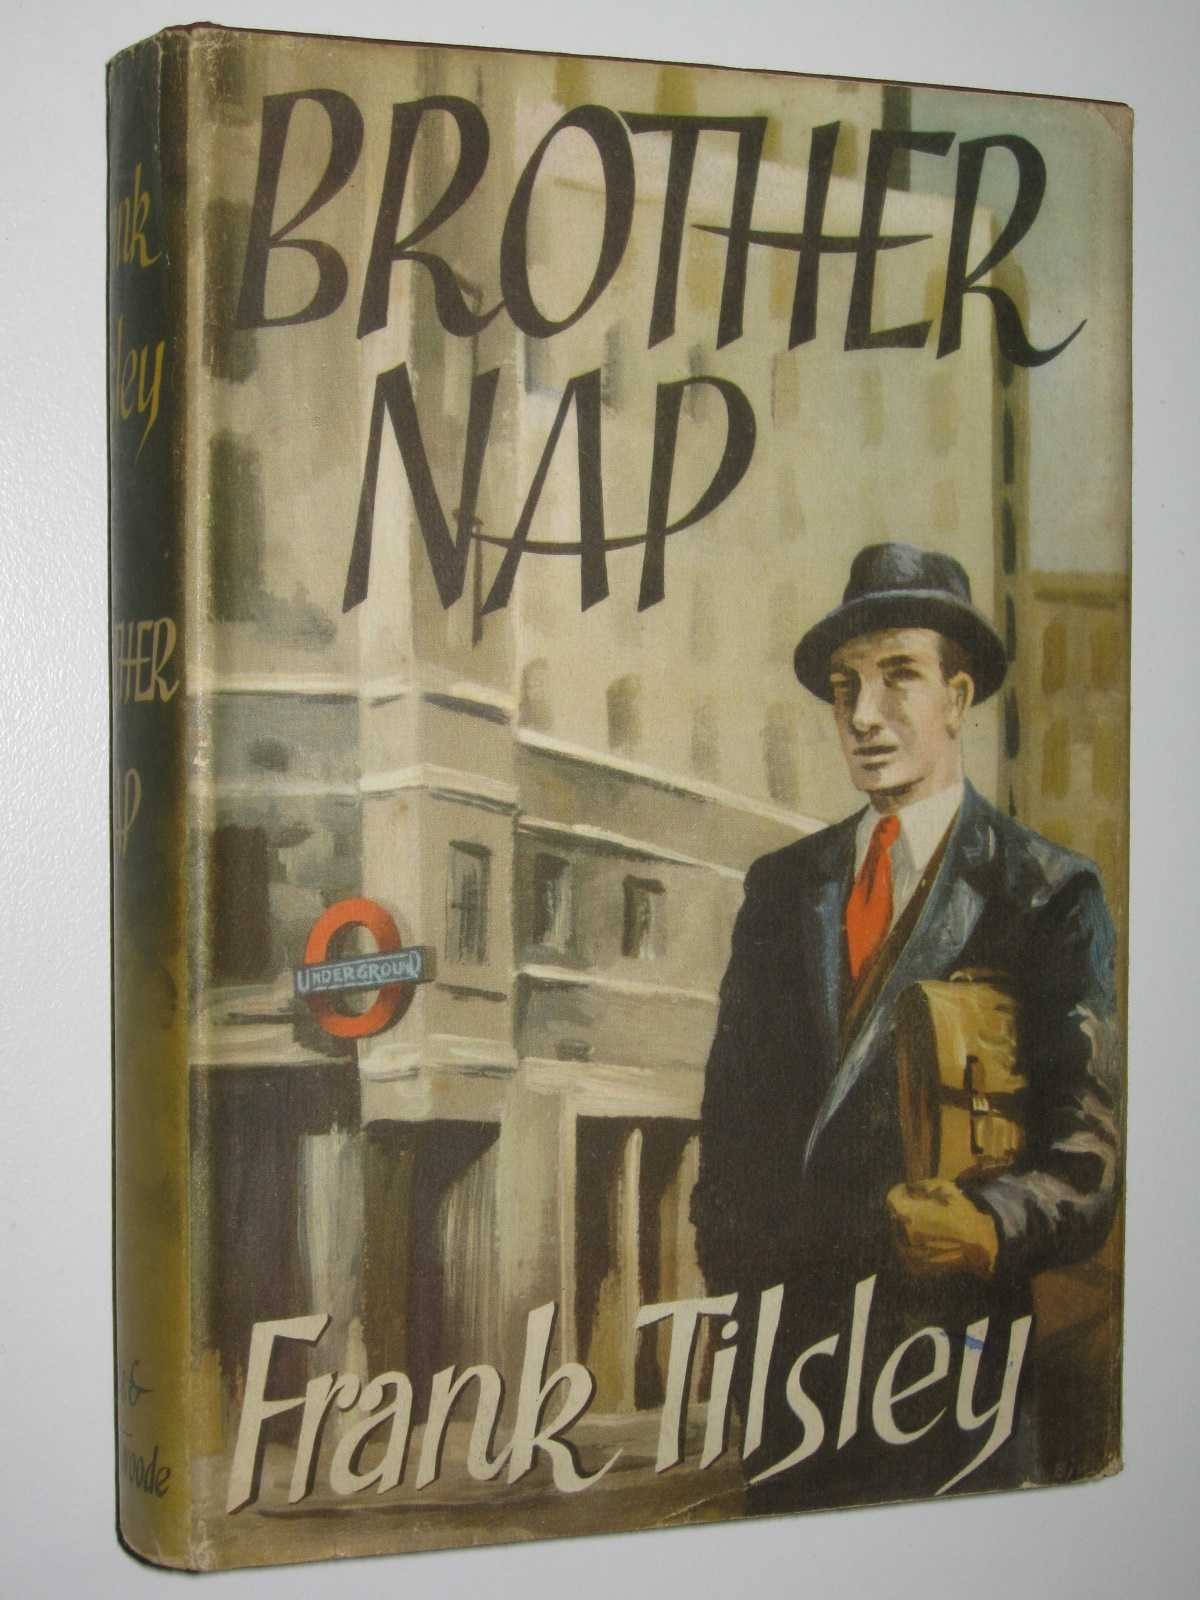 Brother Nap, Tilsley, Frank